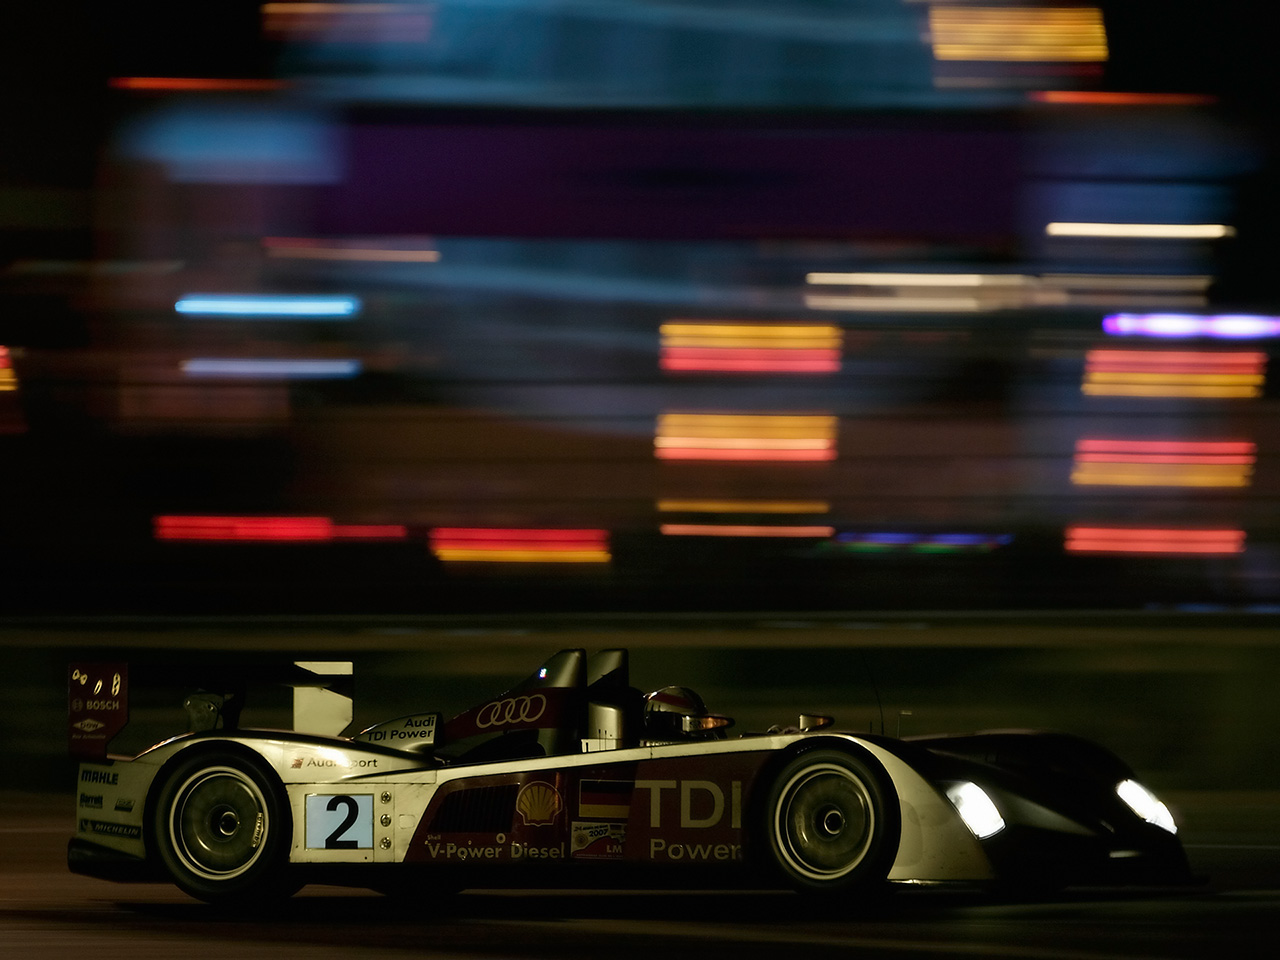 Audi Lemans Wallpaper 1280x960 ID30340   WallpaperVortexcom 1280x960